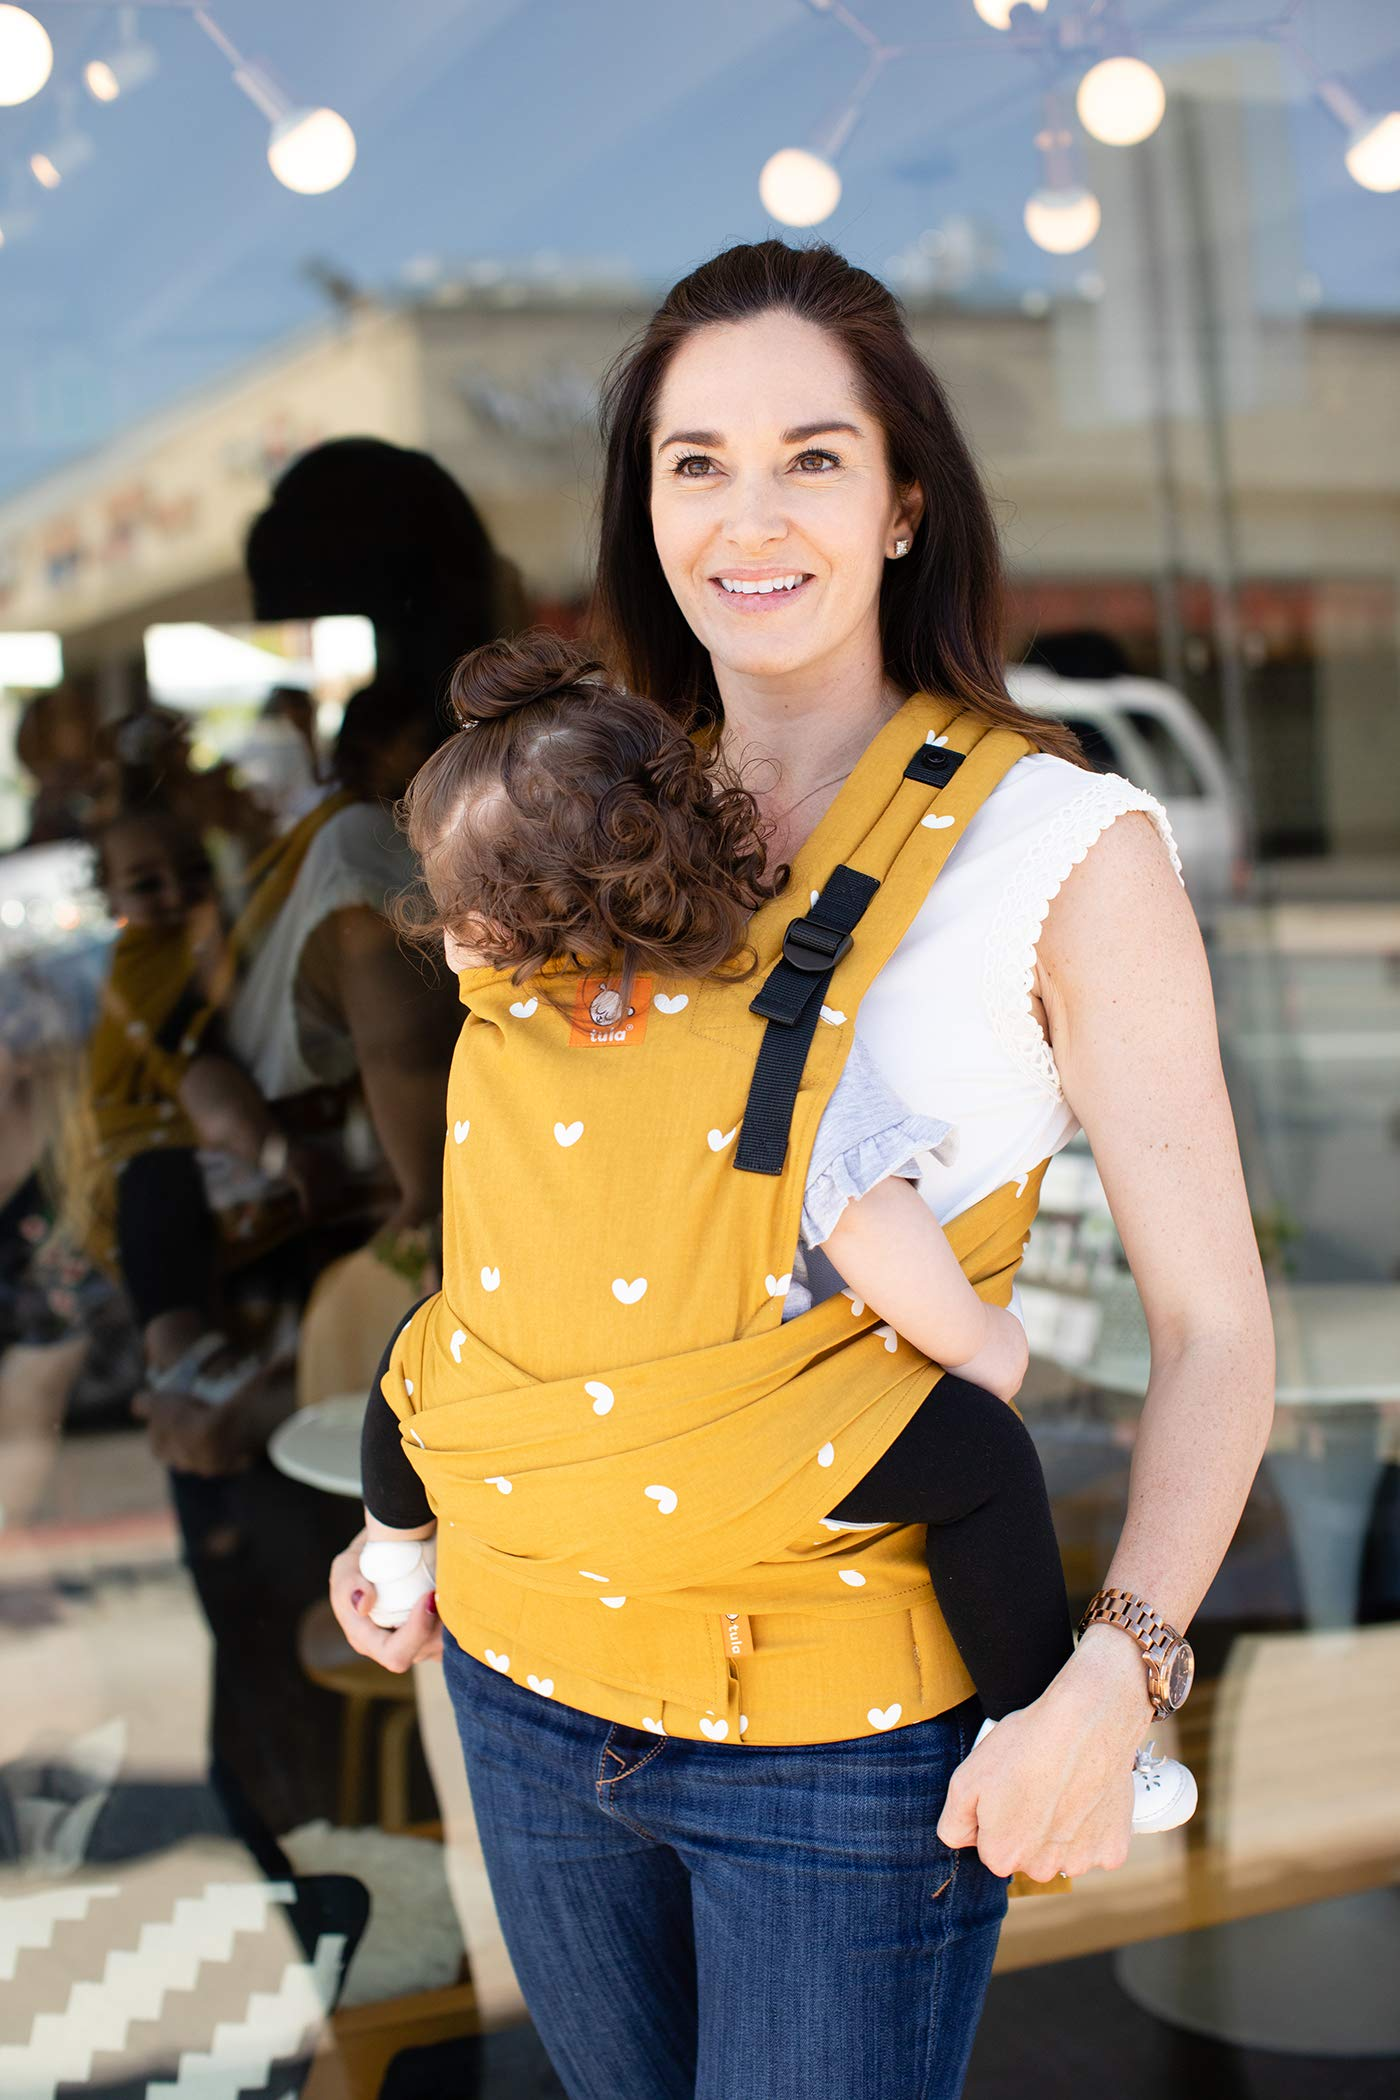 Tula Half Buckle TBCA5G1 Play - Asian Inspired Hybrid Baby Carrier with Padded Shoulder Straps with Crossover Option for Babies 3 2 to 20 4 kg Tula Multiple door positions: front inward, hip and back EASILY ADJUSTABLE DESIGN: Main panel with adjustable height and width, allowing for ergonomic and tight positions as baby grows. For babies from 3, 2 to 20, 4 kg Its long fabric straps wrap around the body allowing for the perfect fit. 3